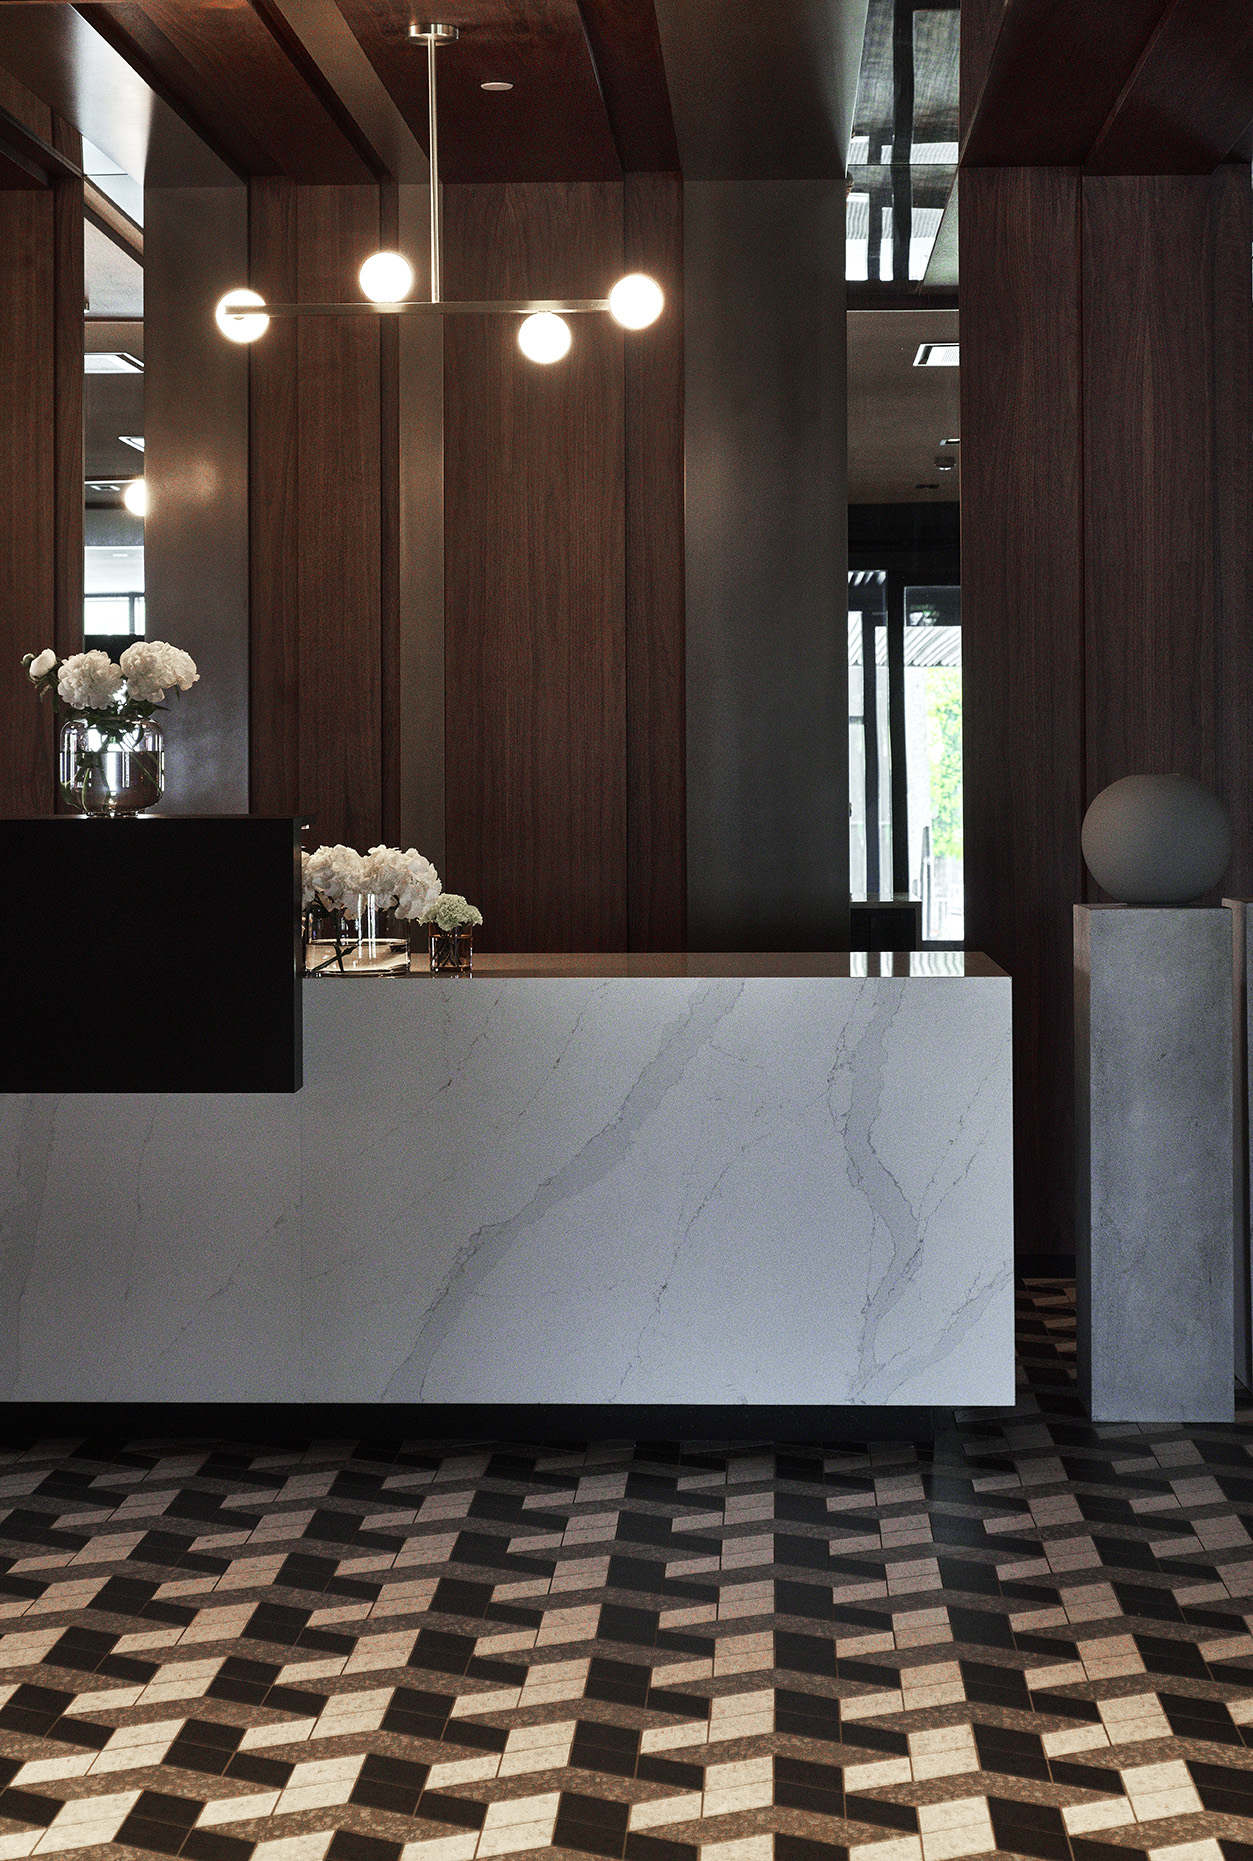 HOTEL CALEDONIEN - A 60's iconic landmark in the heart of Kristiansand have undergone a retro chic refurbishment.